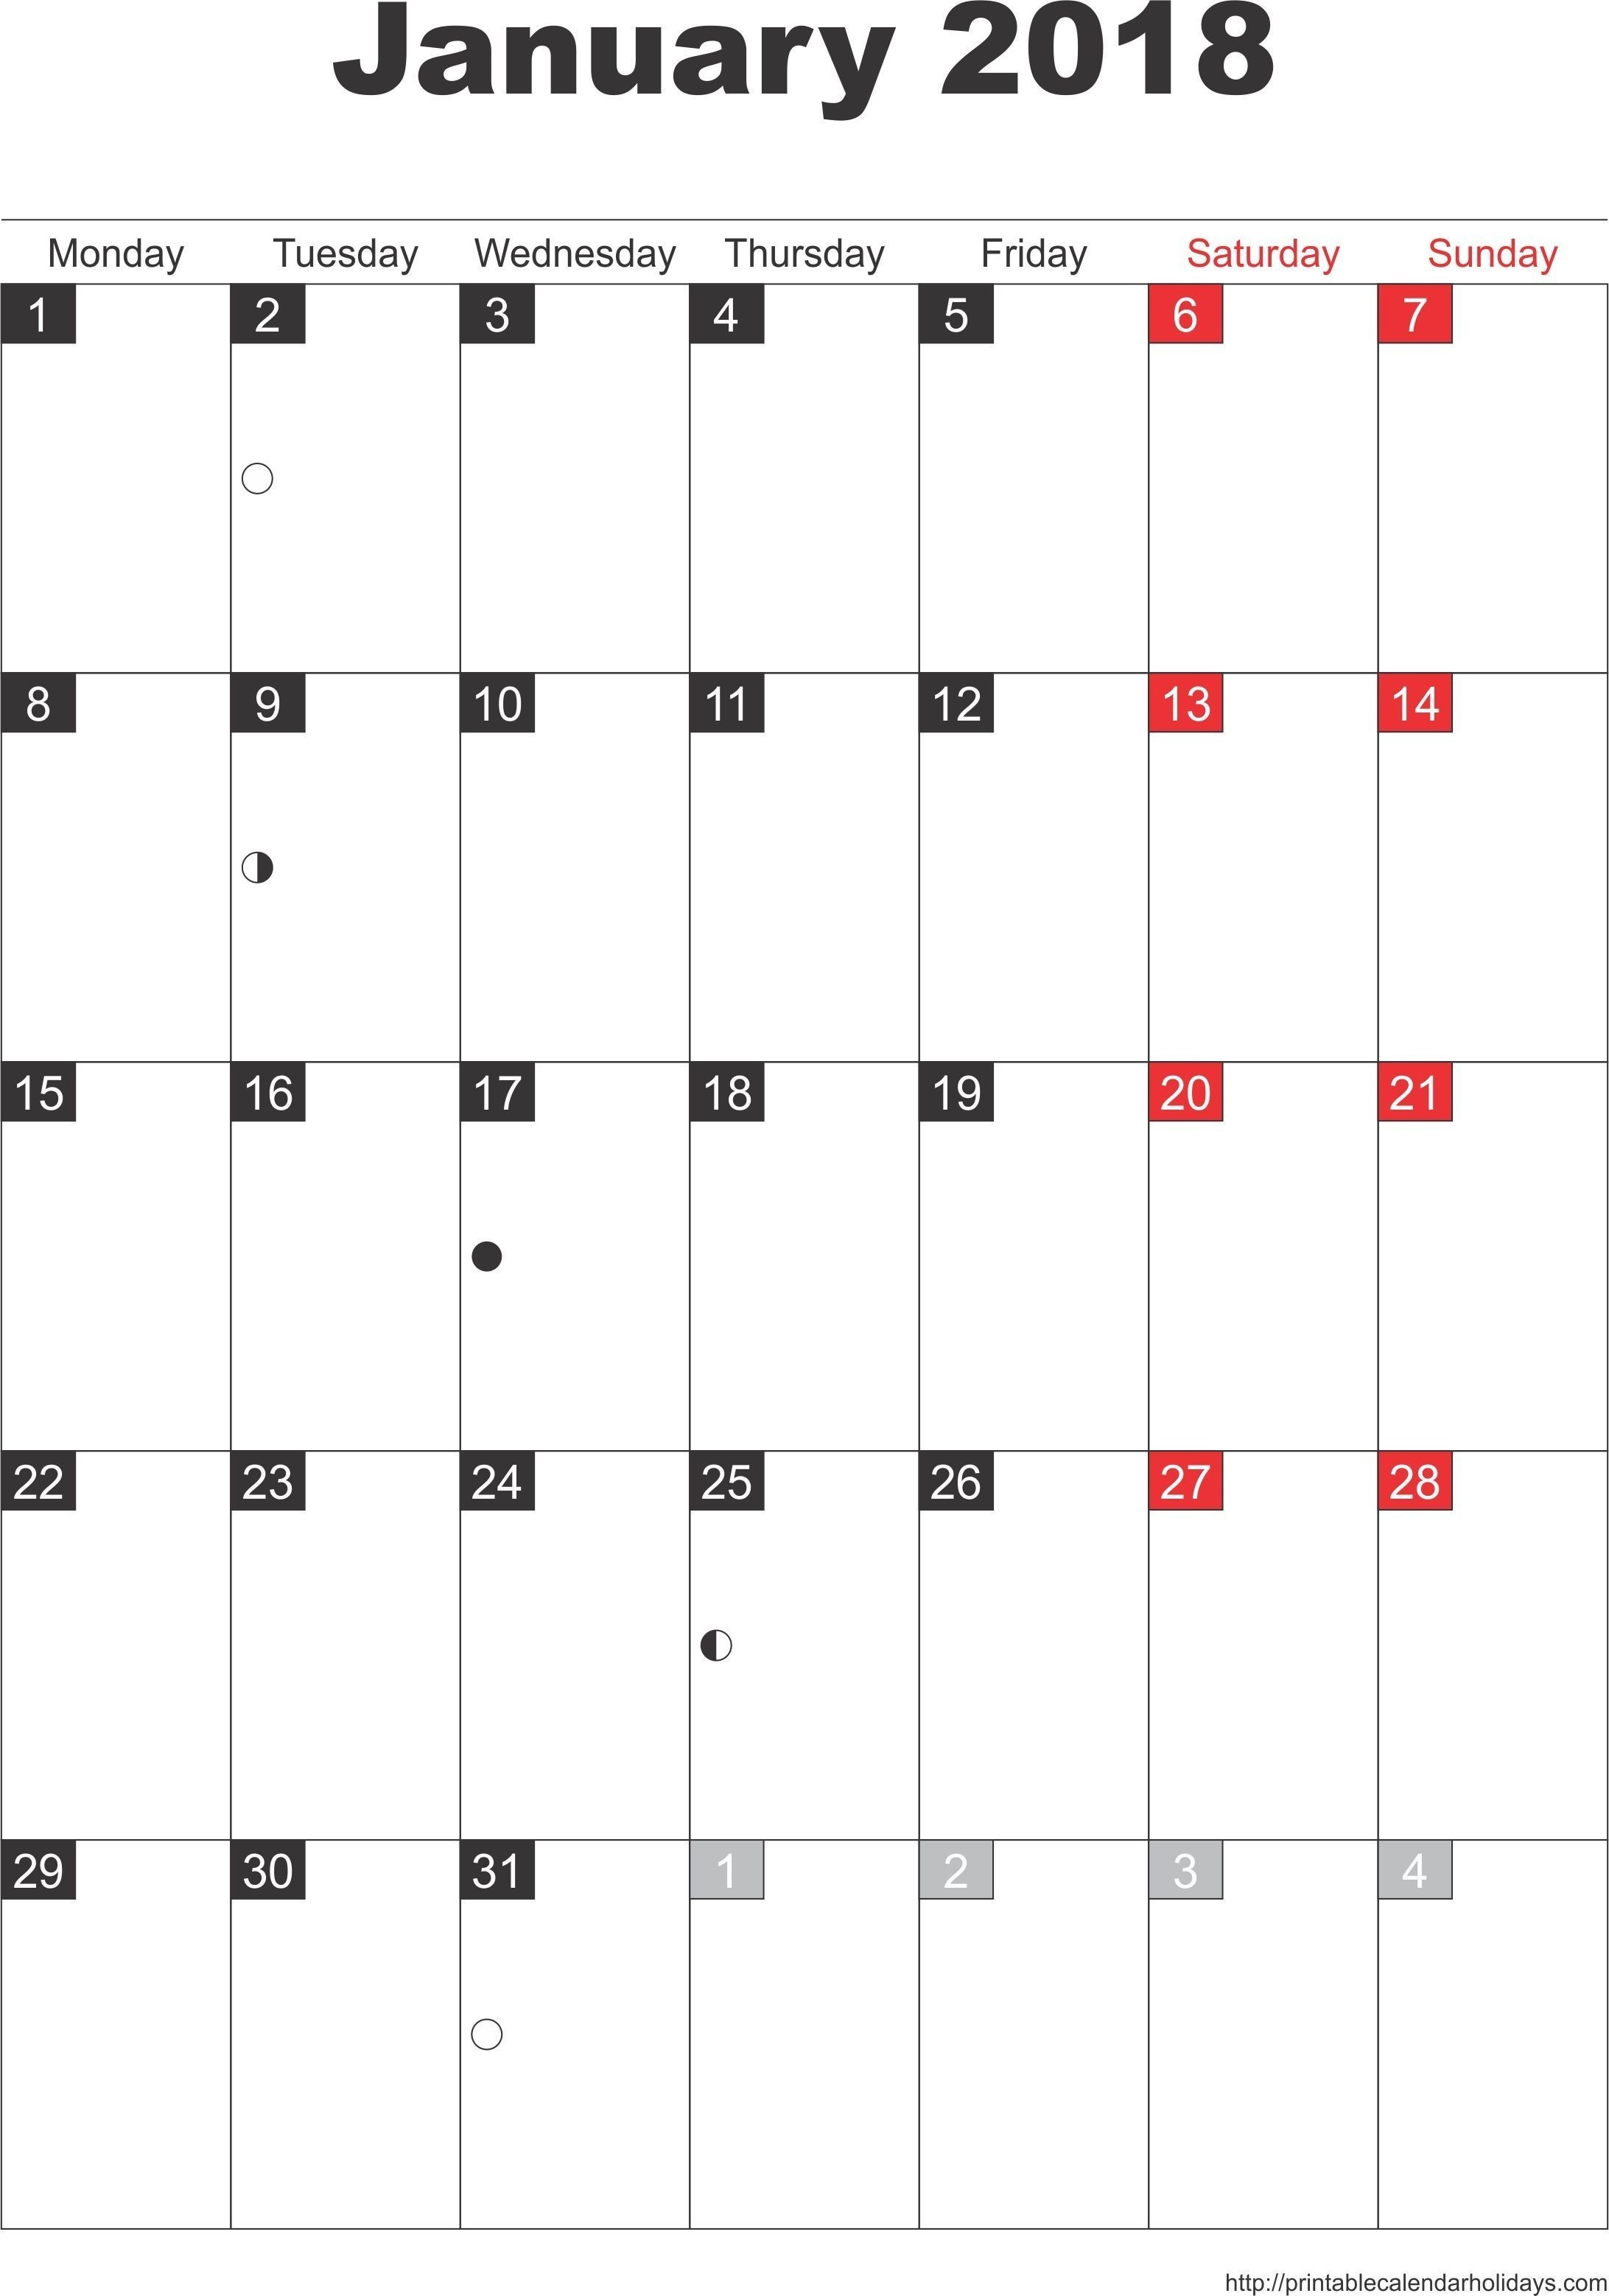 Calendario 2020 Rs Más Populares Project Am—the Fastest Malayalam Calendar 2019 Pdf Of Calendario 2020 Rs Más Recientes Calaméo Num 25 Del 25 Giugno 2016